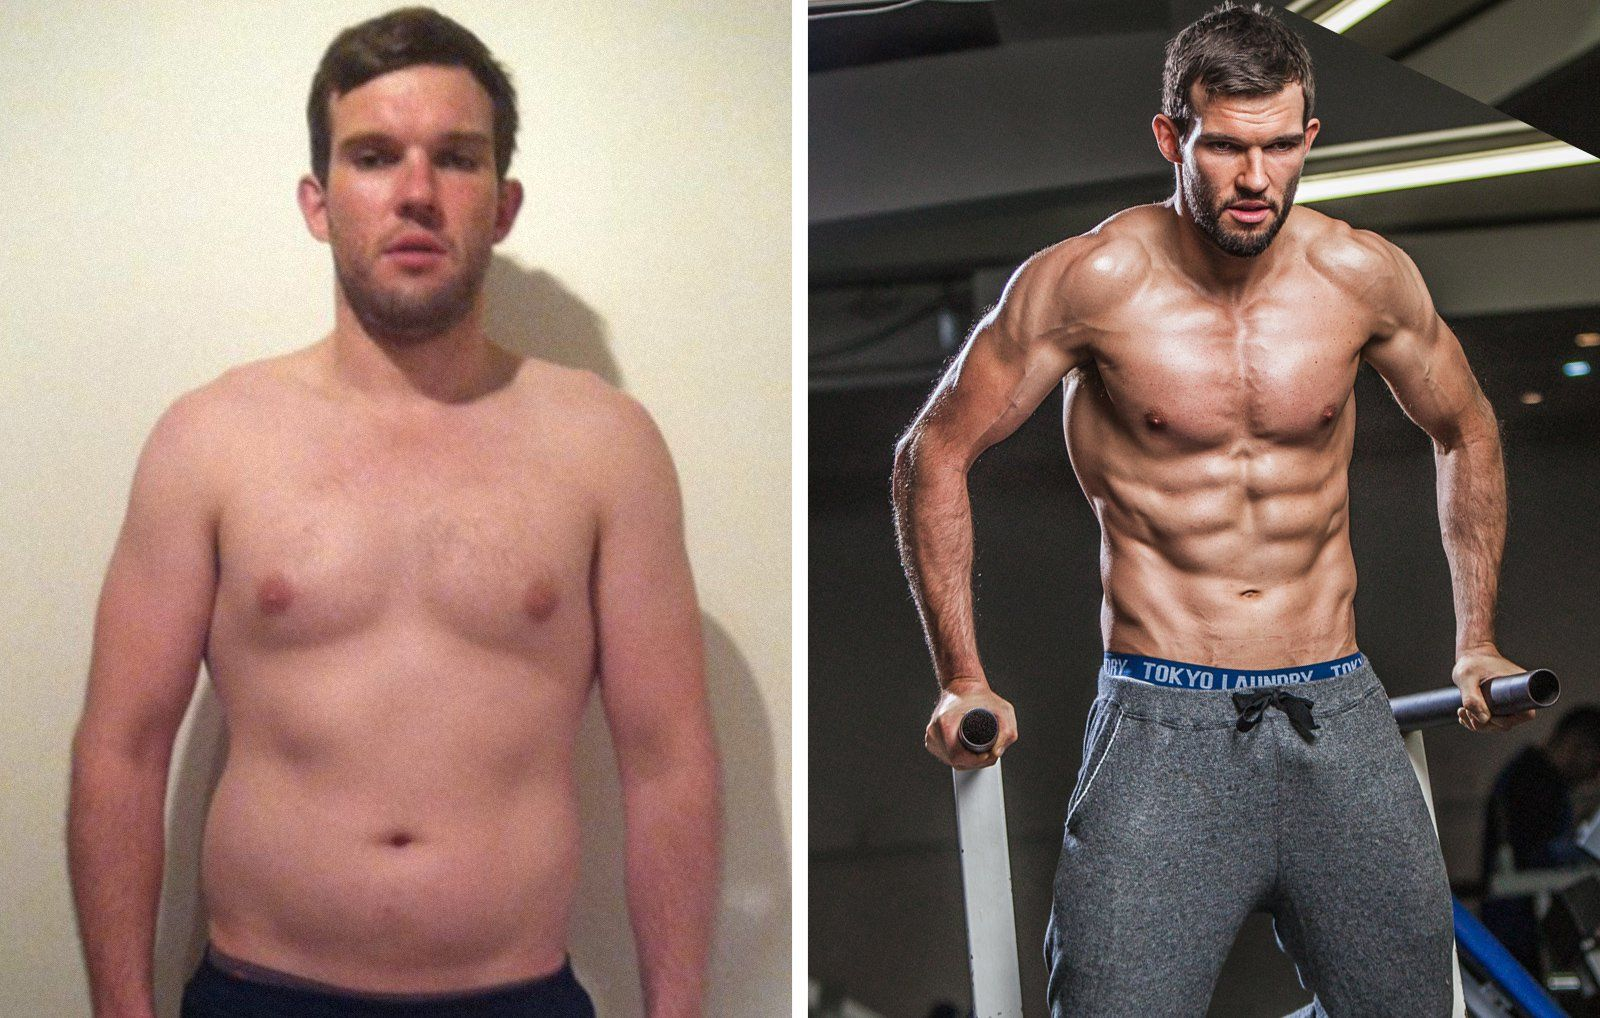 Incredible transformation of a guy in just six months